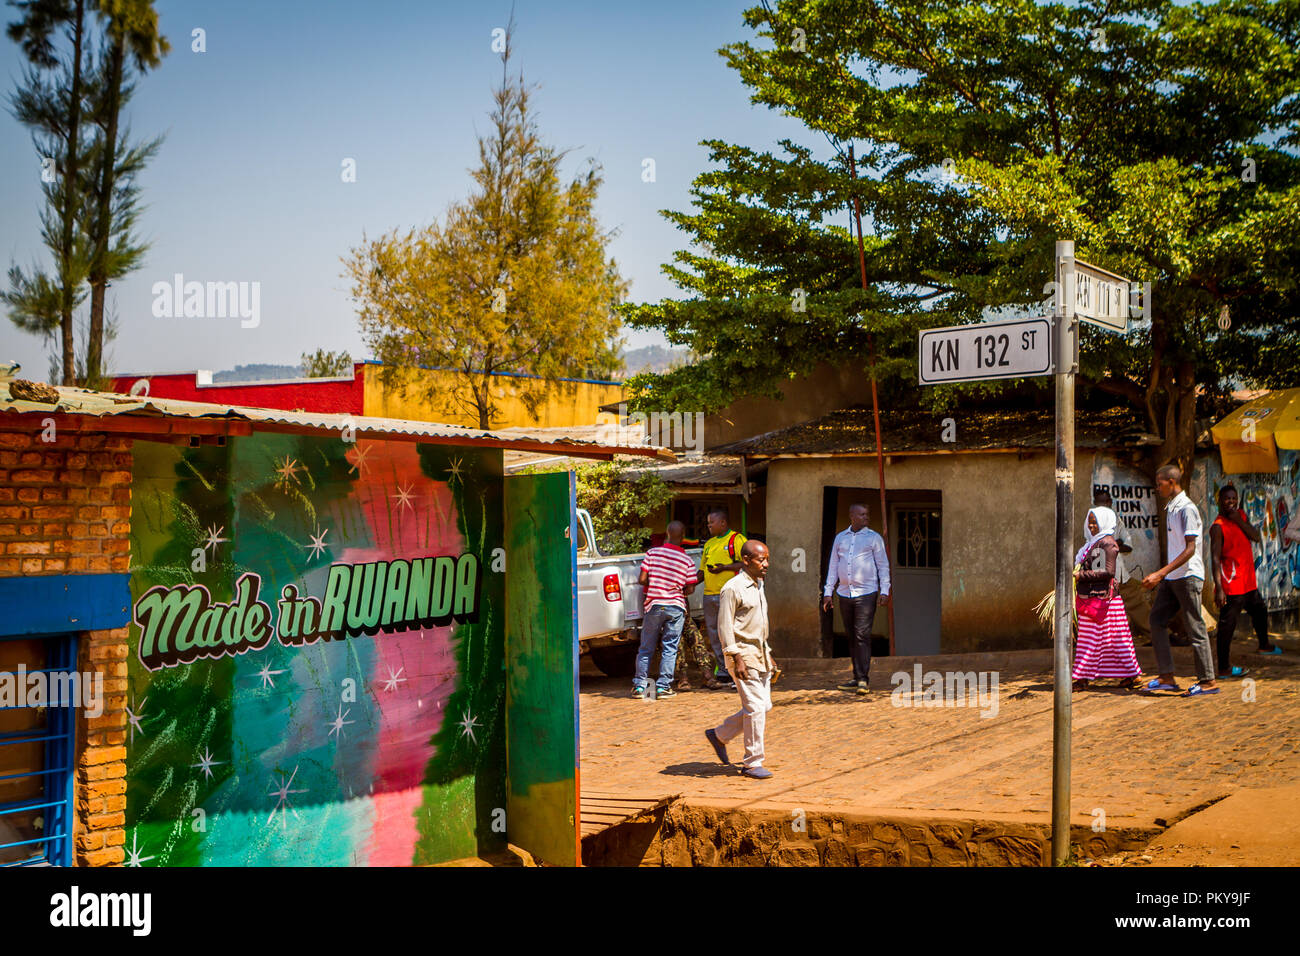 'Made in Rwanda' sign on a sunny summer day in Kigali, Rwanda at the intersection of KN 132 and KN 111. - Stock Image